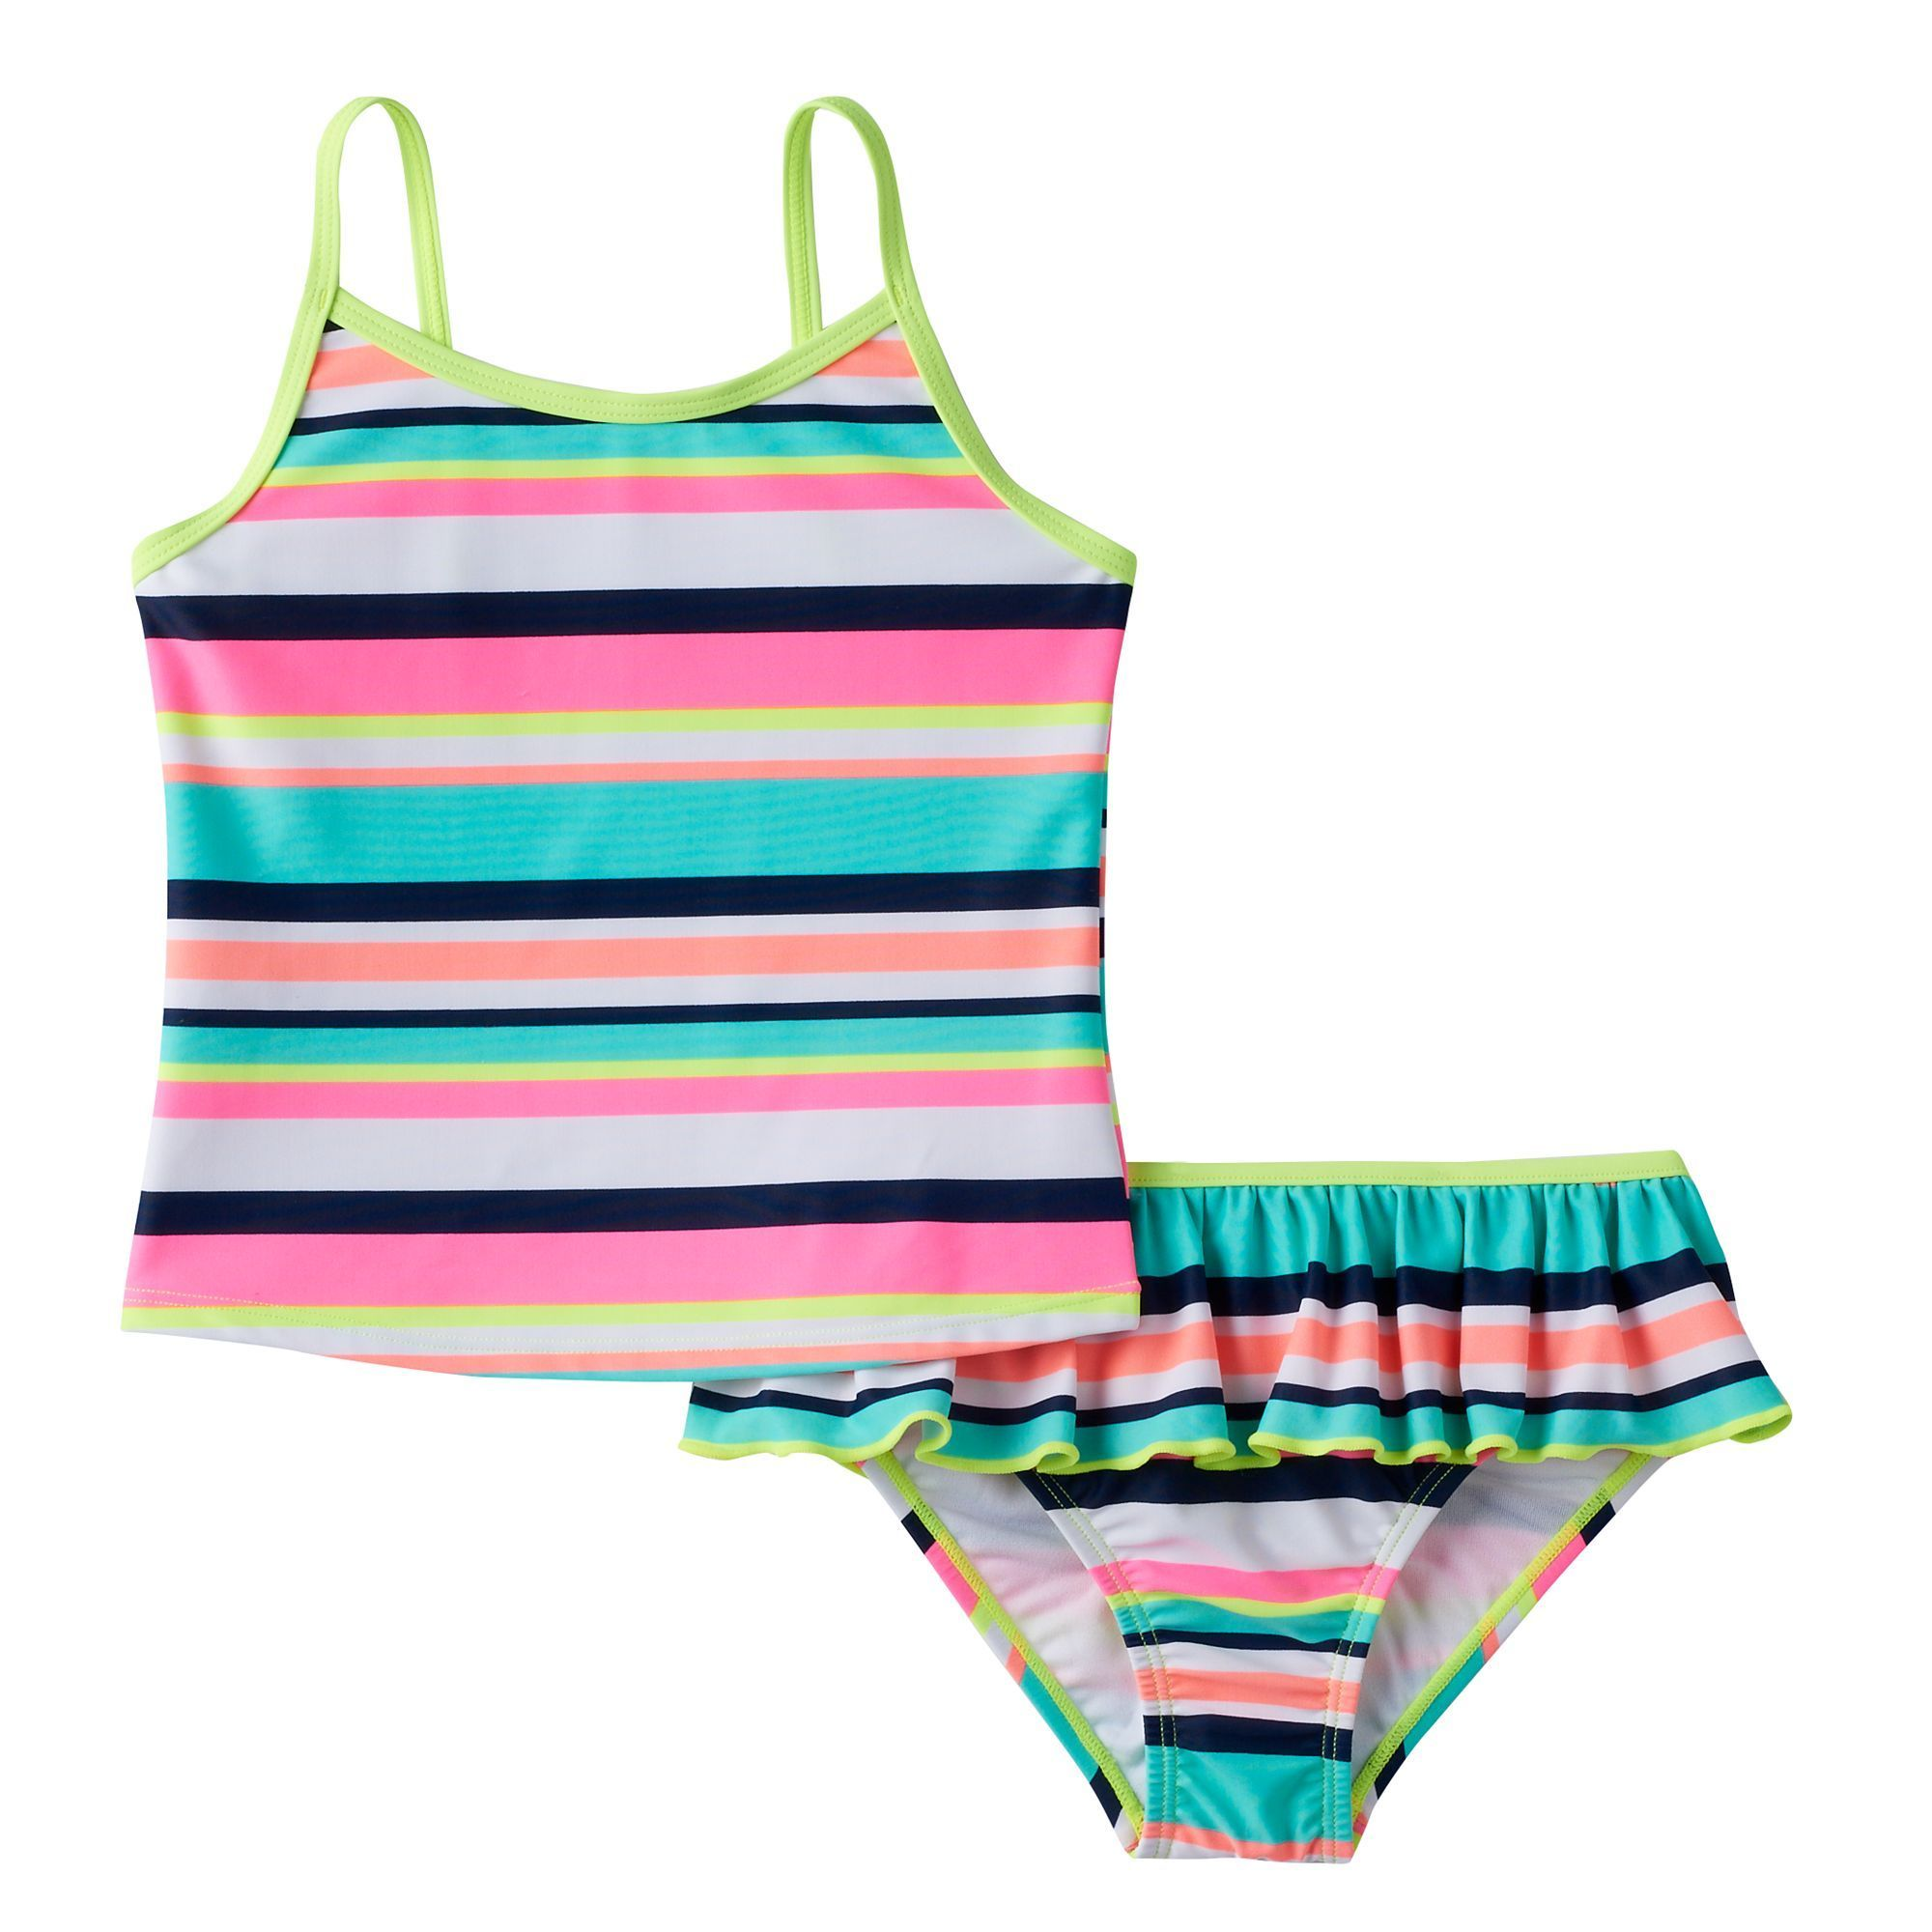 7549e3ccf9 Baby Girl Carter's Striped Tankini Top & Ruffled Bottoms Swimsuit Set,  Size: 12 Months, Brt Green